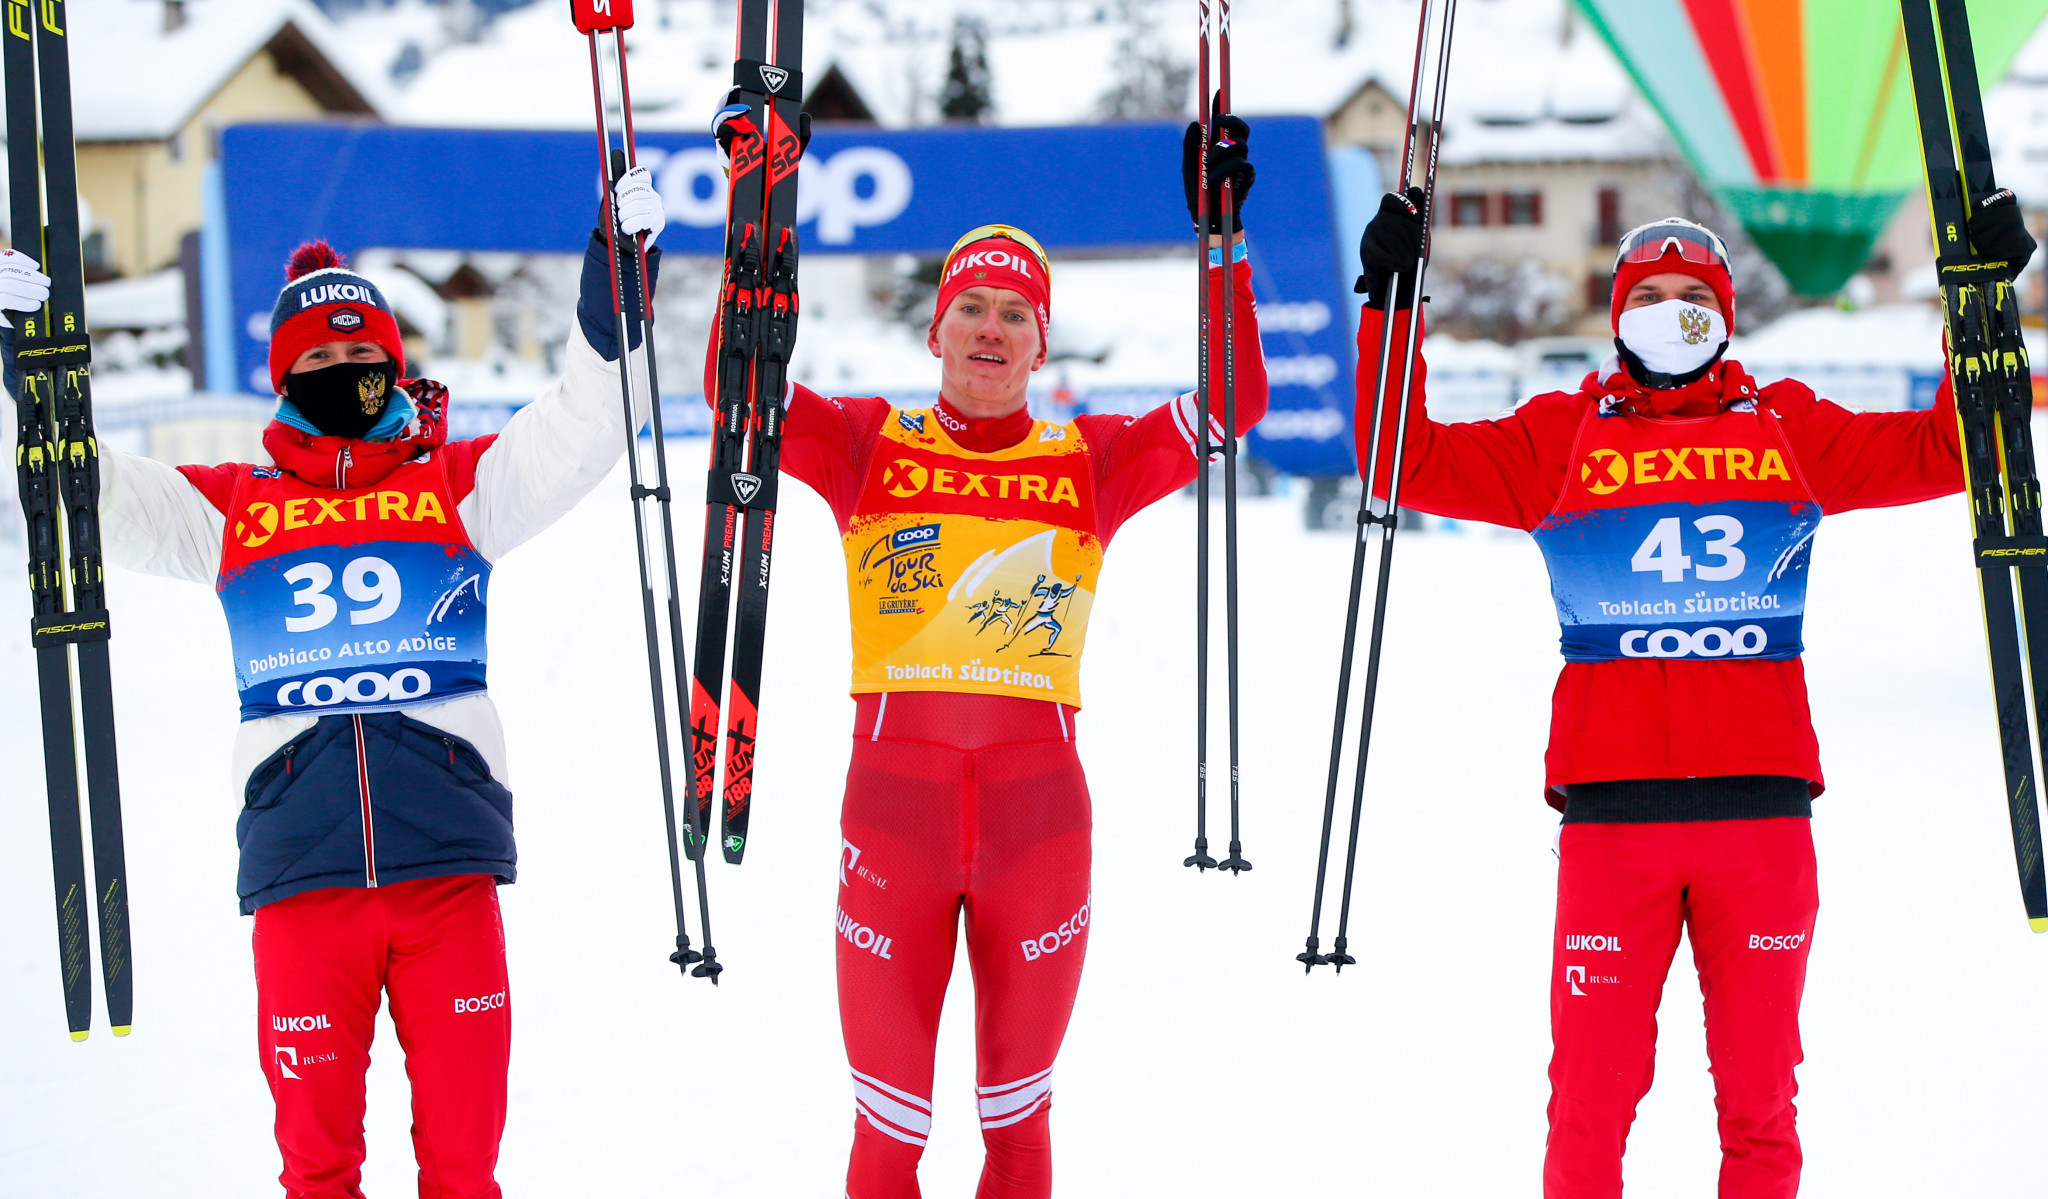 Alexander Bolshunov is flanked by compatriots Denis Spitsov and Ivan Yakimushkin after completing an all-Russian podium ©Getty Images